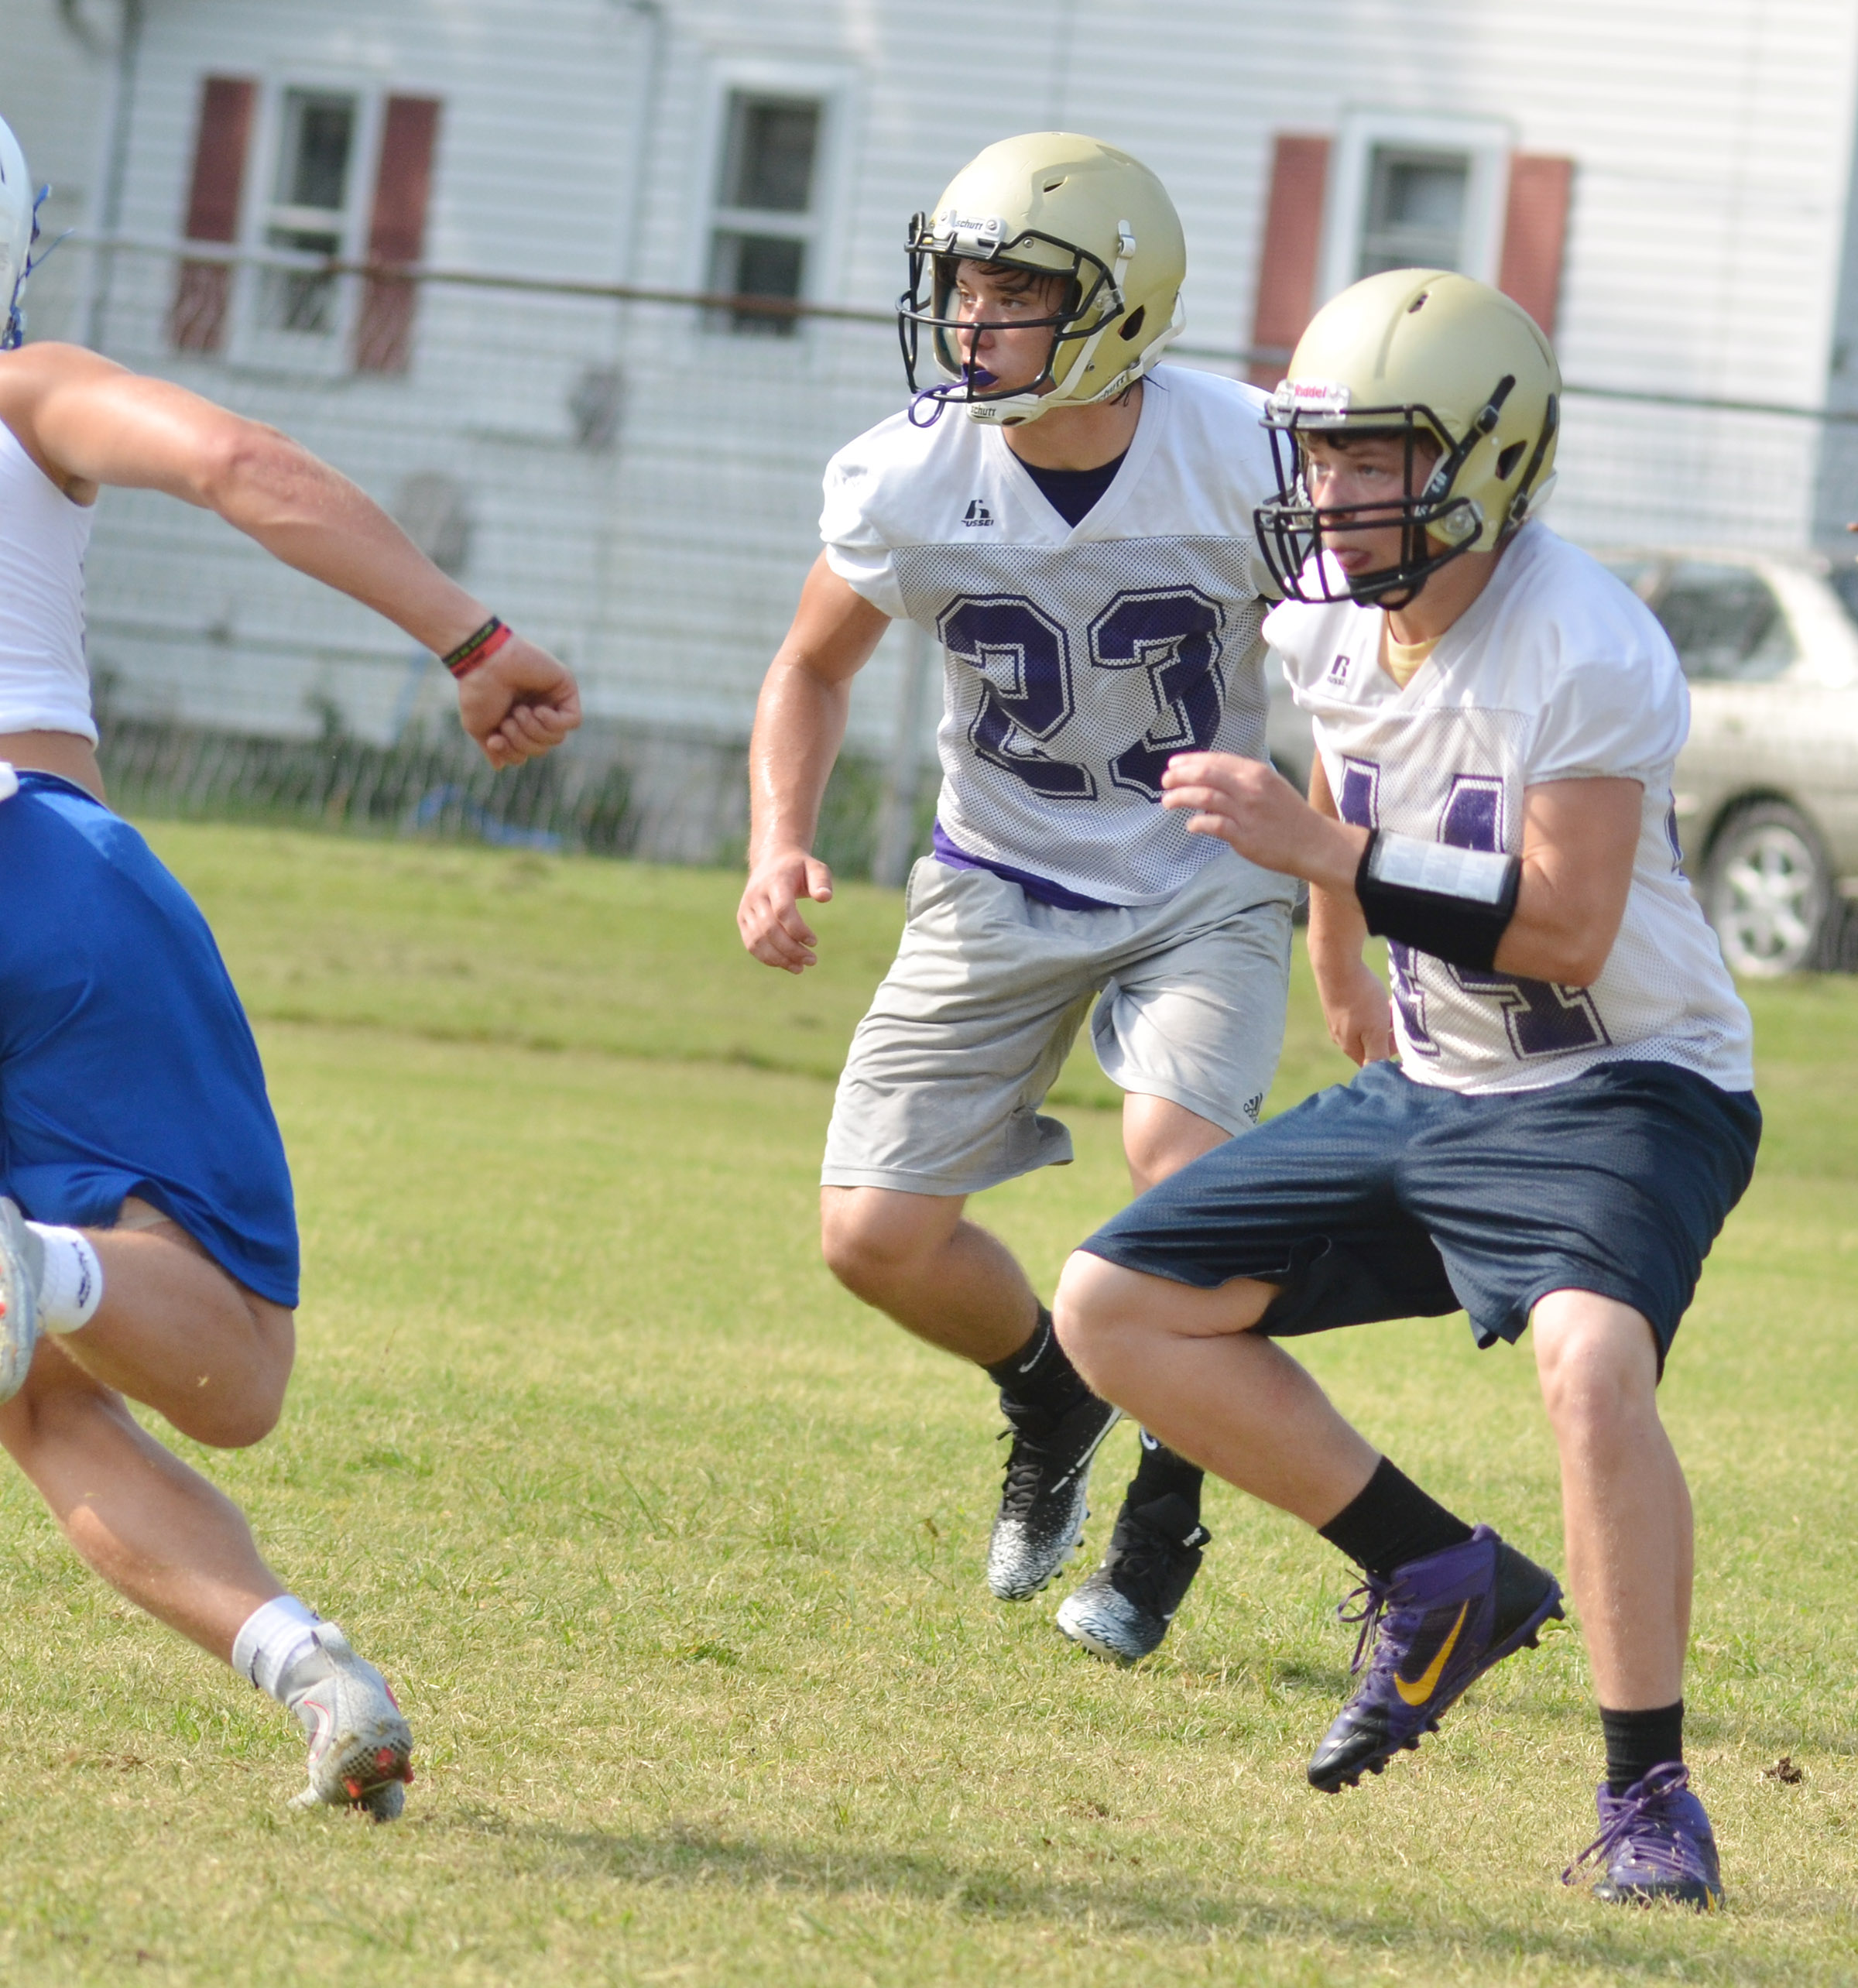 CHS junior Tristan Johnson, at left, and sophomore Devon Reardon get set to tackle.